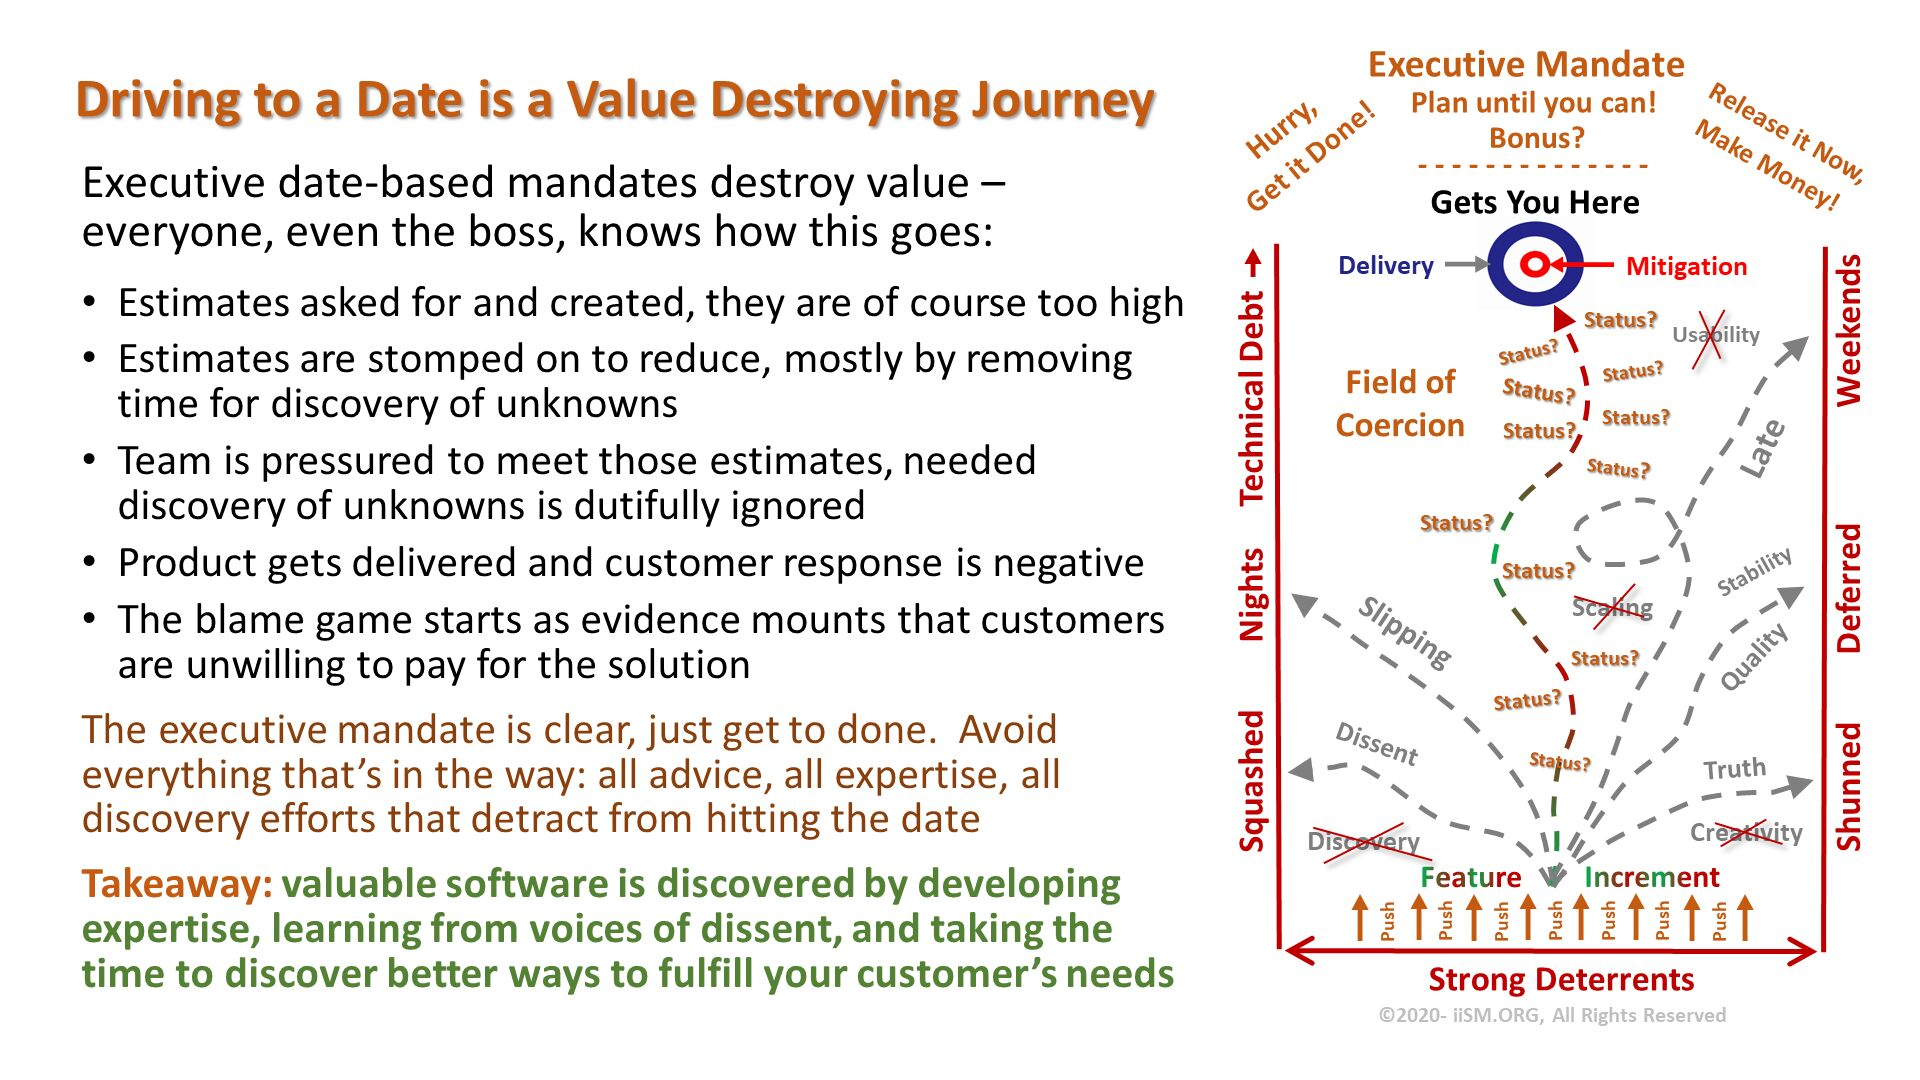 Driving to a Date is a Value Destroying Journey. Executive date-based mandates destroy value – everyone, even the boss, knows how this goes:   Estimates asked for and created, they are of course too high Estimates are stomped on to reduce, mostly by removing time for discovery of unknowns Team is pressured to meet those estimates, needed discovery of unknowns is dutifully ignored Product gets delivered and customer response is negative The blame game starts as evidence mounts that customers are unwilling to pay for the solution The executive mandate is clear, just get to done.  Avoid everything that's in the way: all advice, all expertise, all discovery efforts that detract from hitting the date Takeaway: valuable software is discovered by developing expertise, learning from voices of dissent, and taking the time to discover better ways to fulfill your customer's needs.